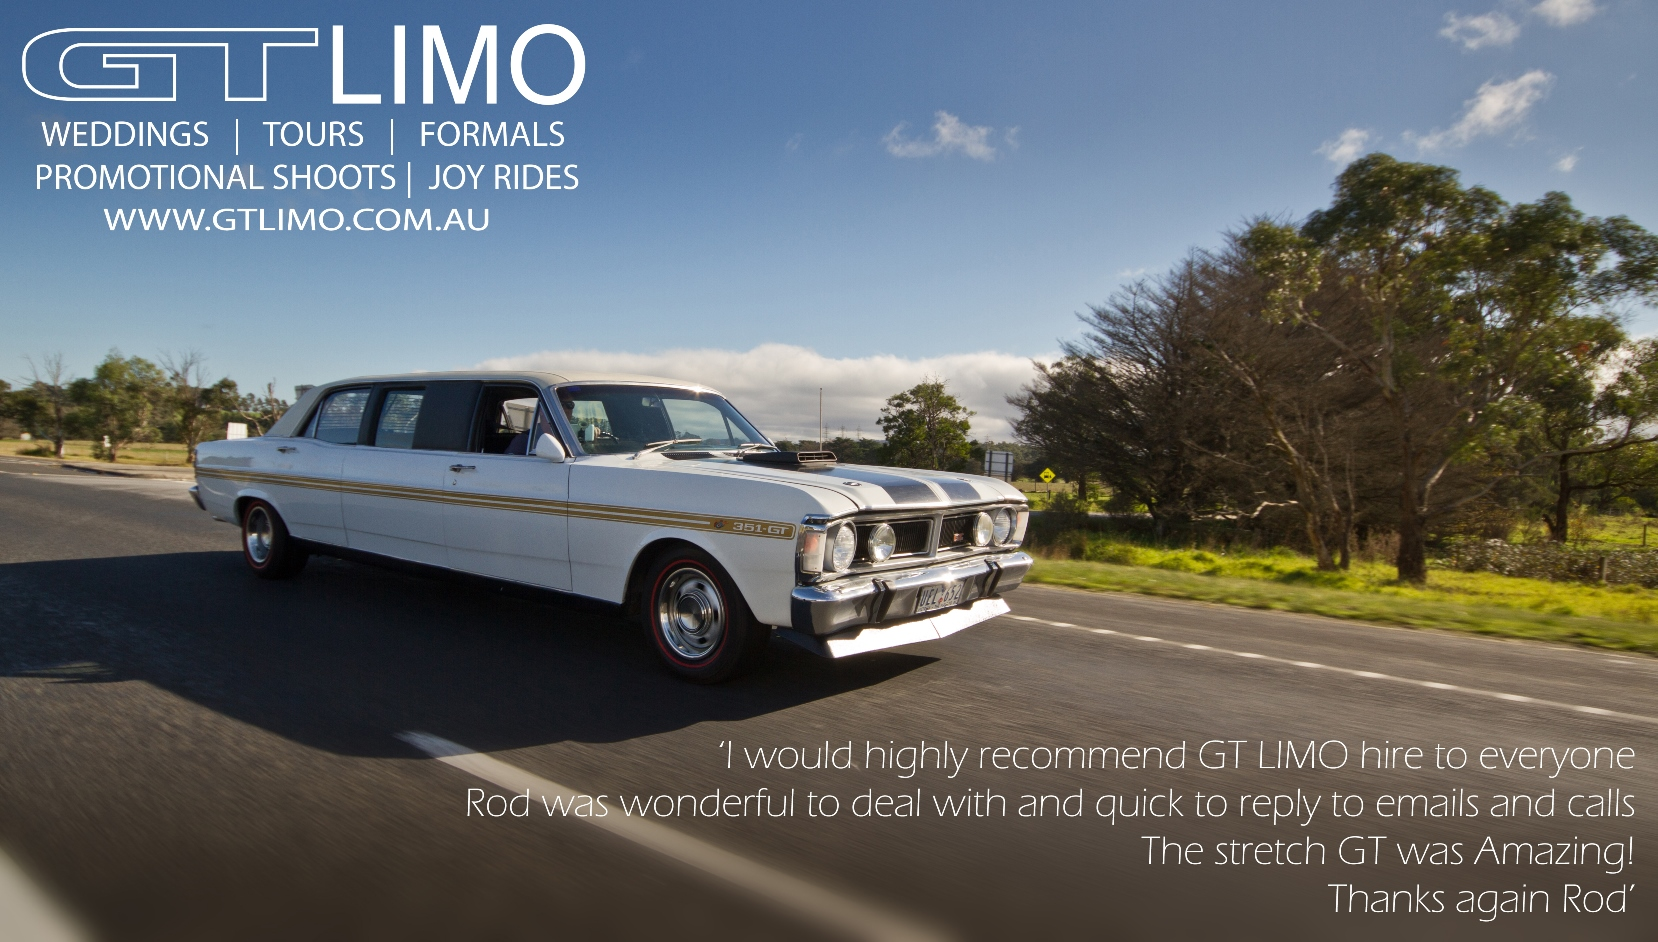 GT LIMO Ultra White wedding car hire